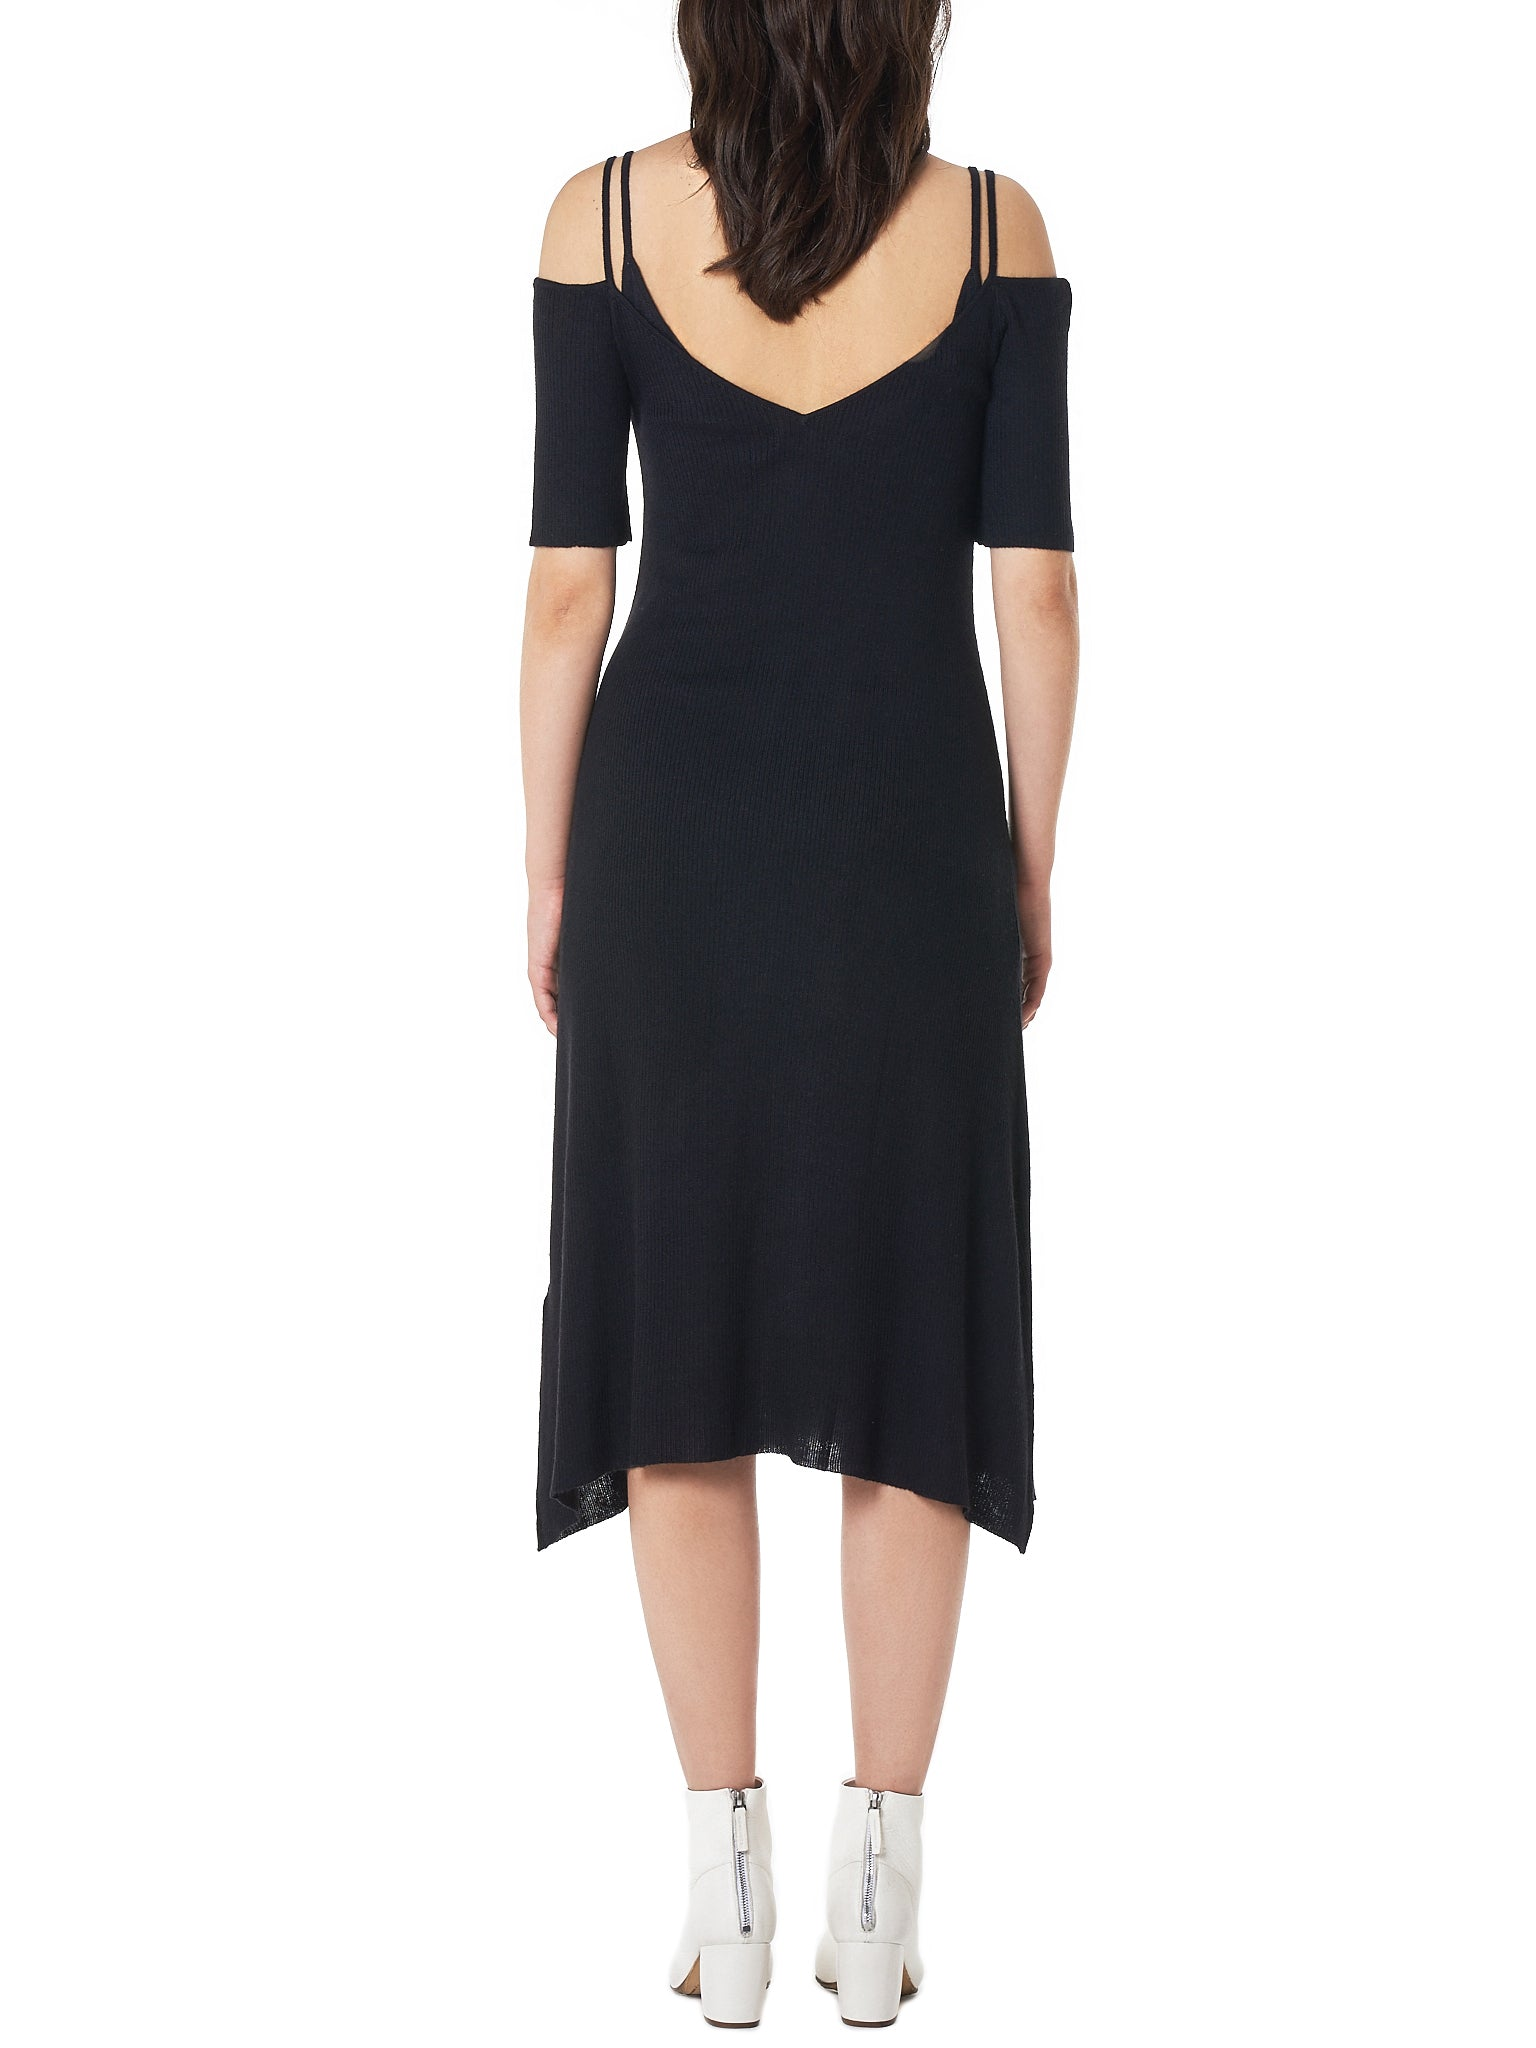 Ryan Roche Dress - Hlorenzo Back